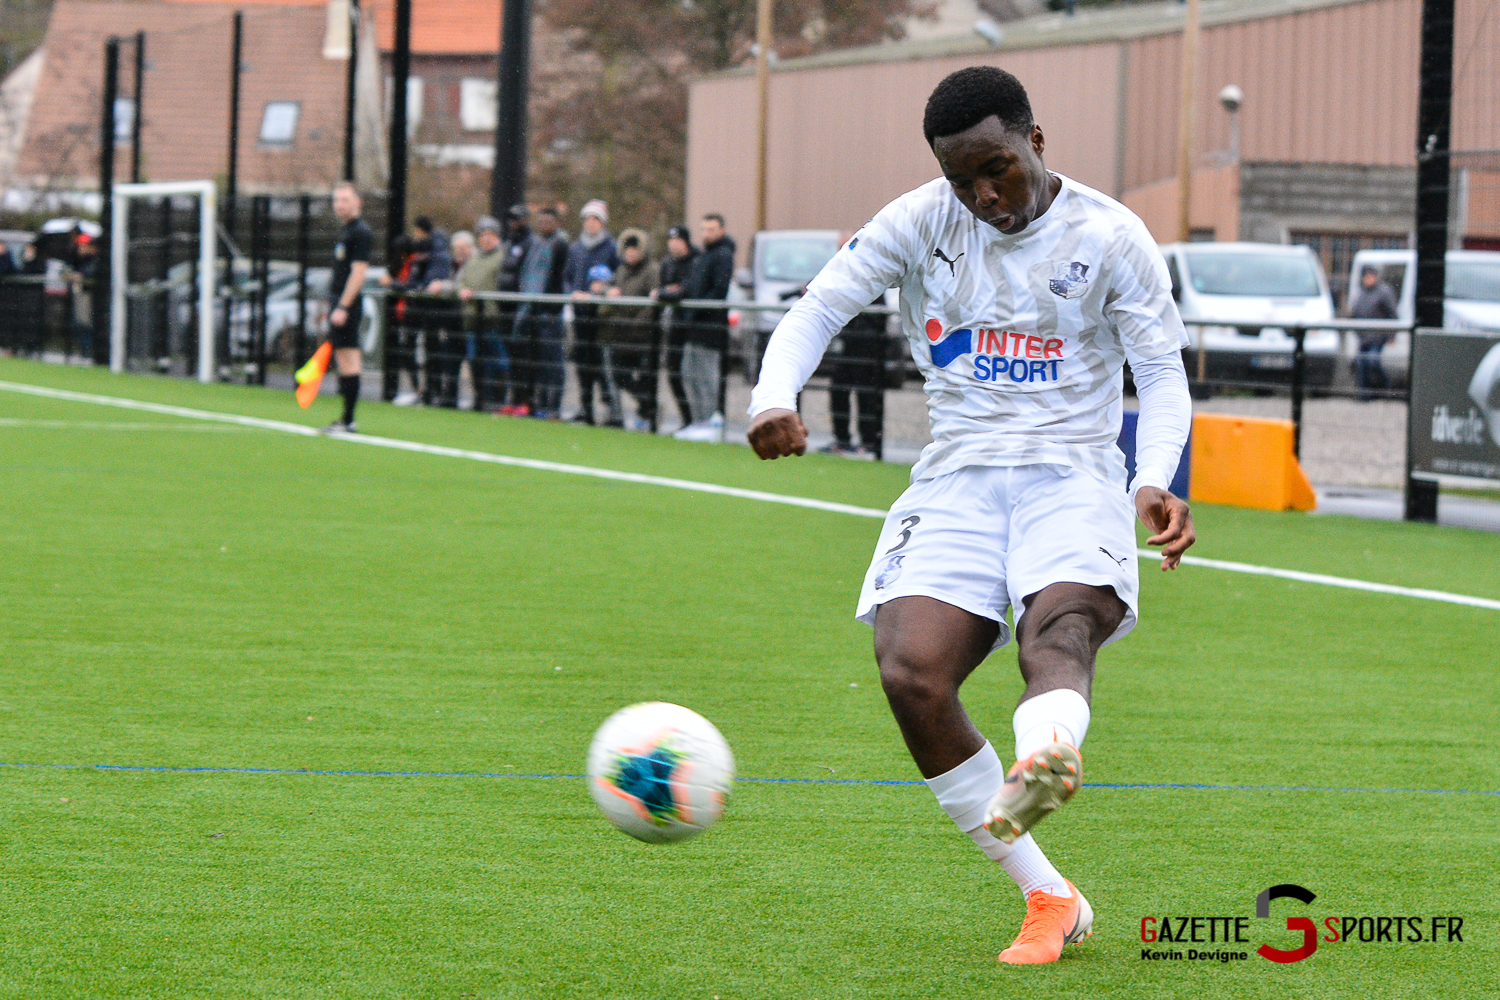 Football Ascb Vs Le Touquet Kevin Devigne Gazettesports 13